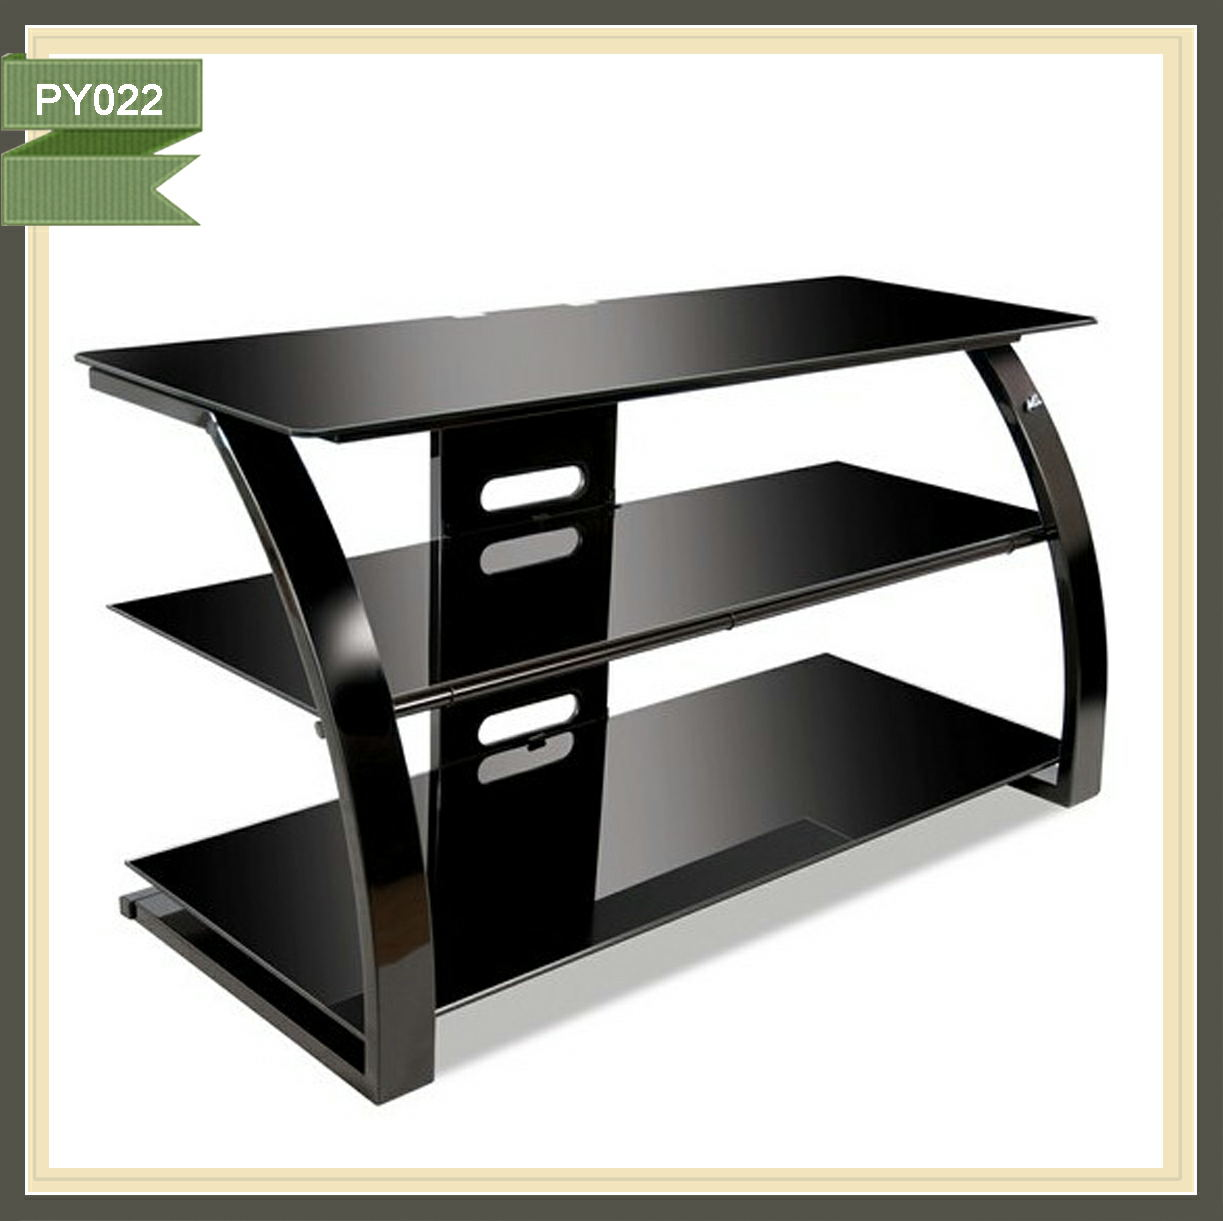 Elevator tv stand cheap crystal display cabinets PY022